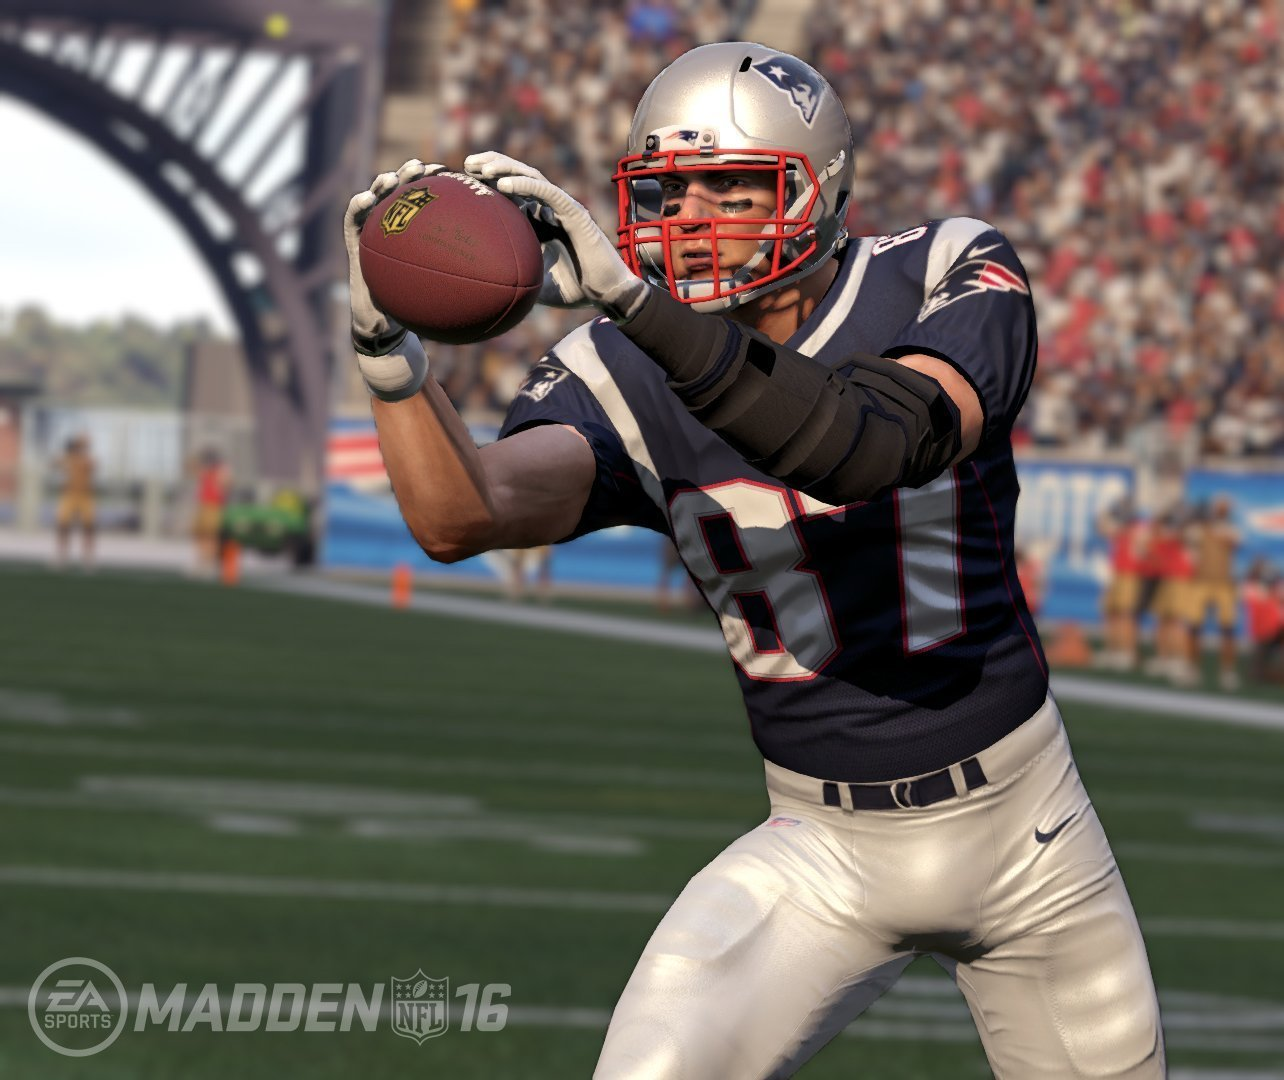 Buy Madden NFL 16 PS4 Digital Code Playstation Network